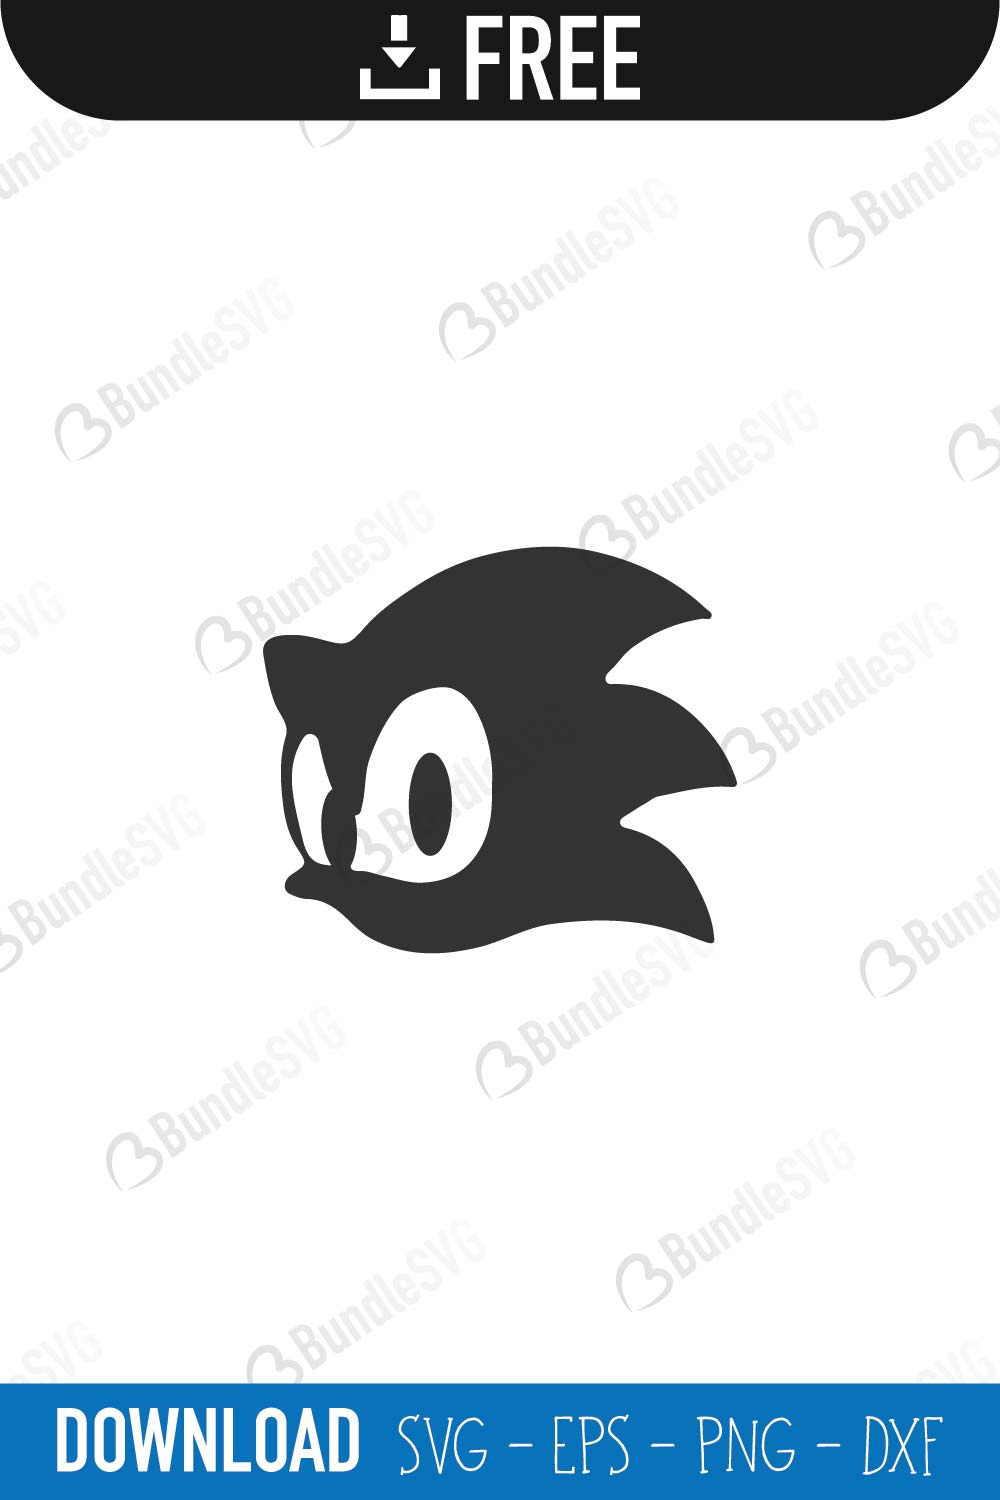 Sonic Hedgehog Svg Cut Files Free Download Bundlesvg